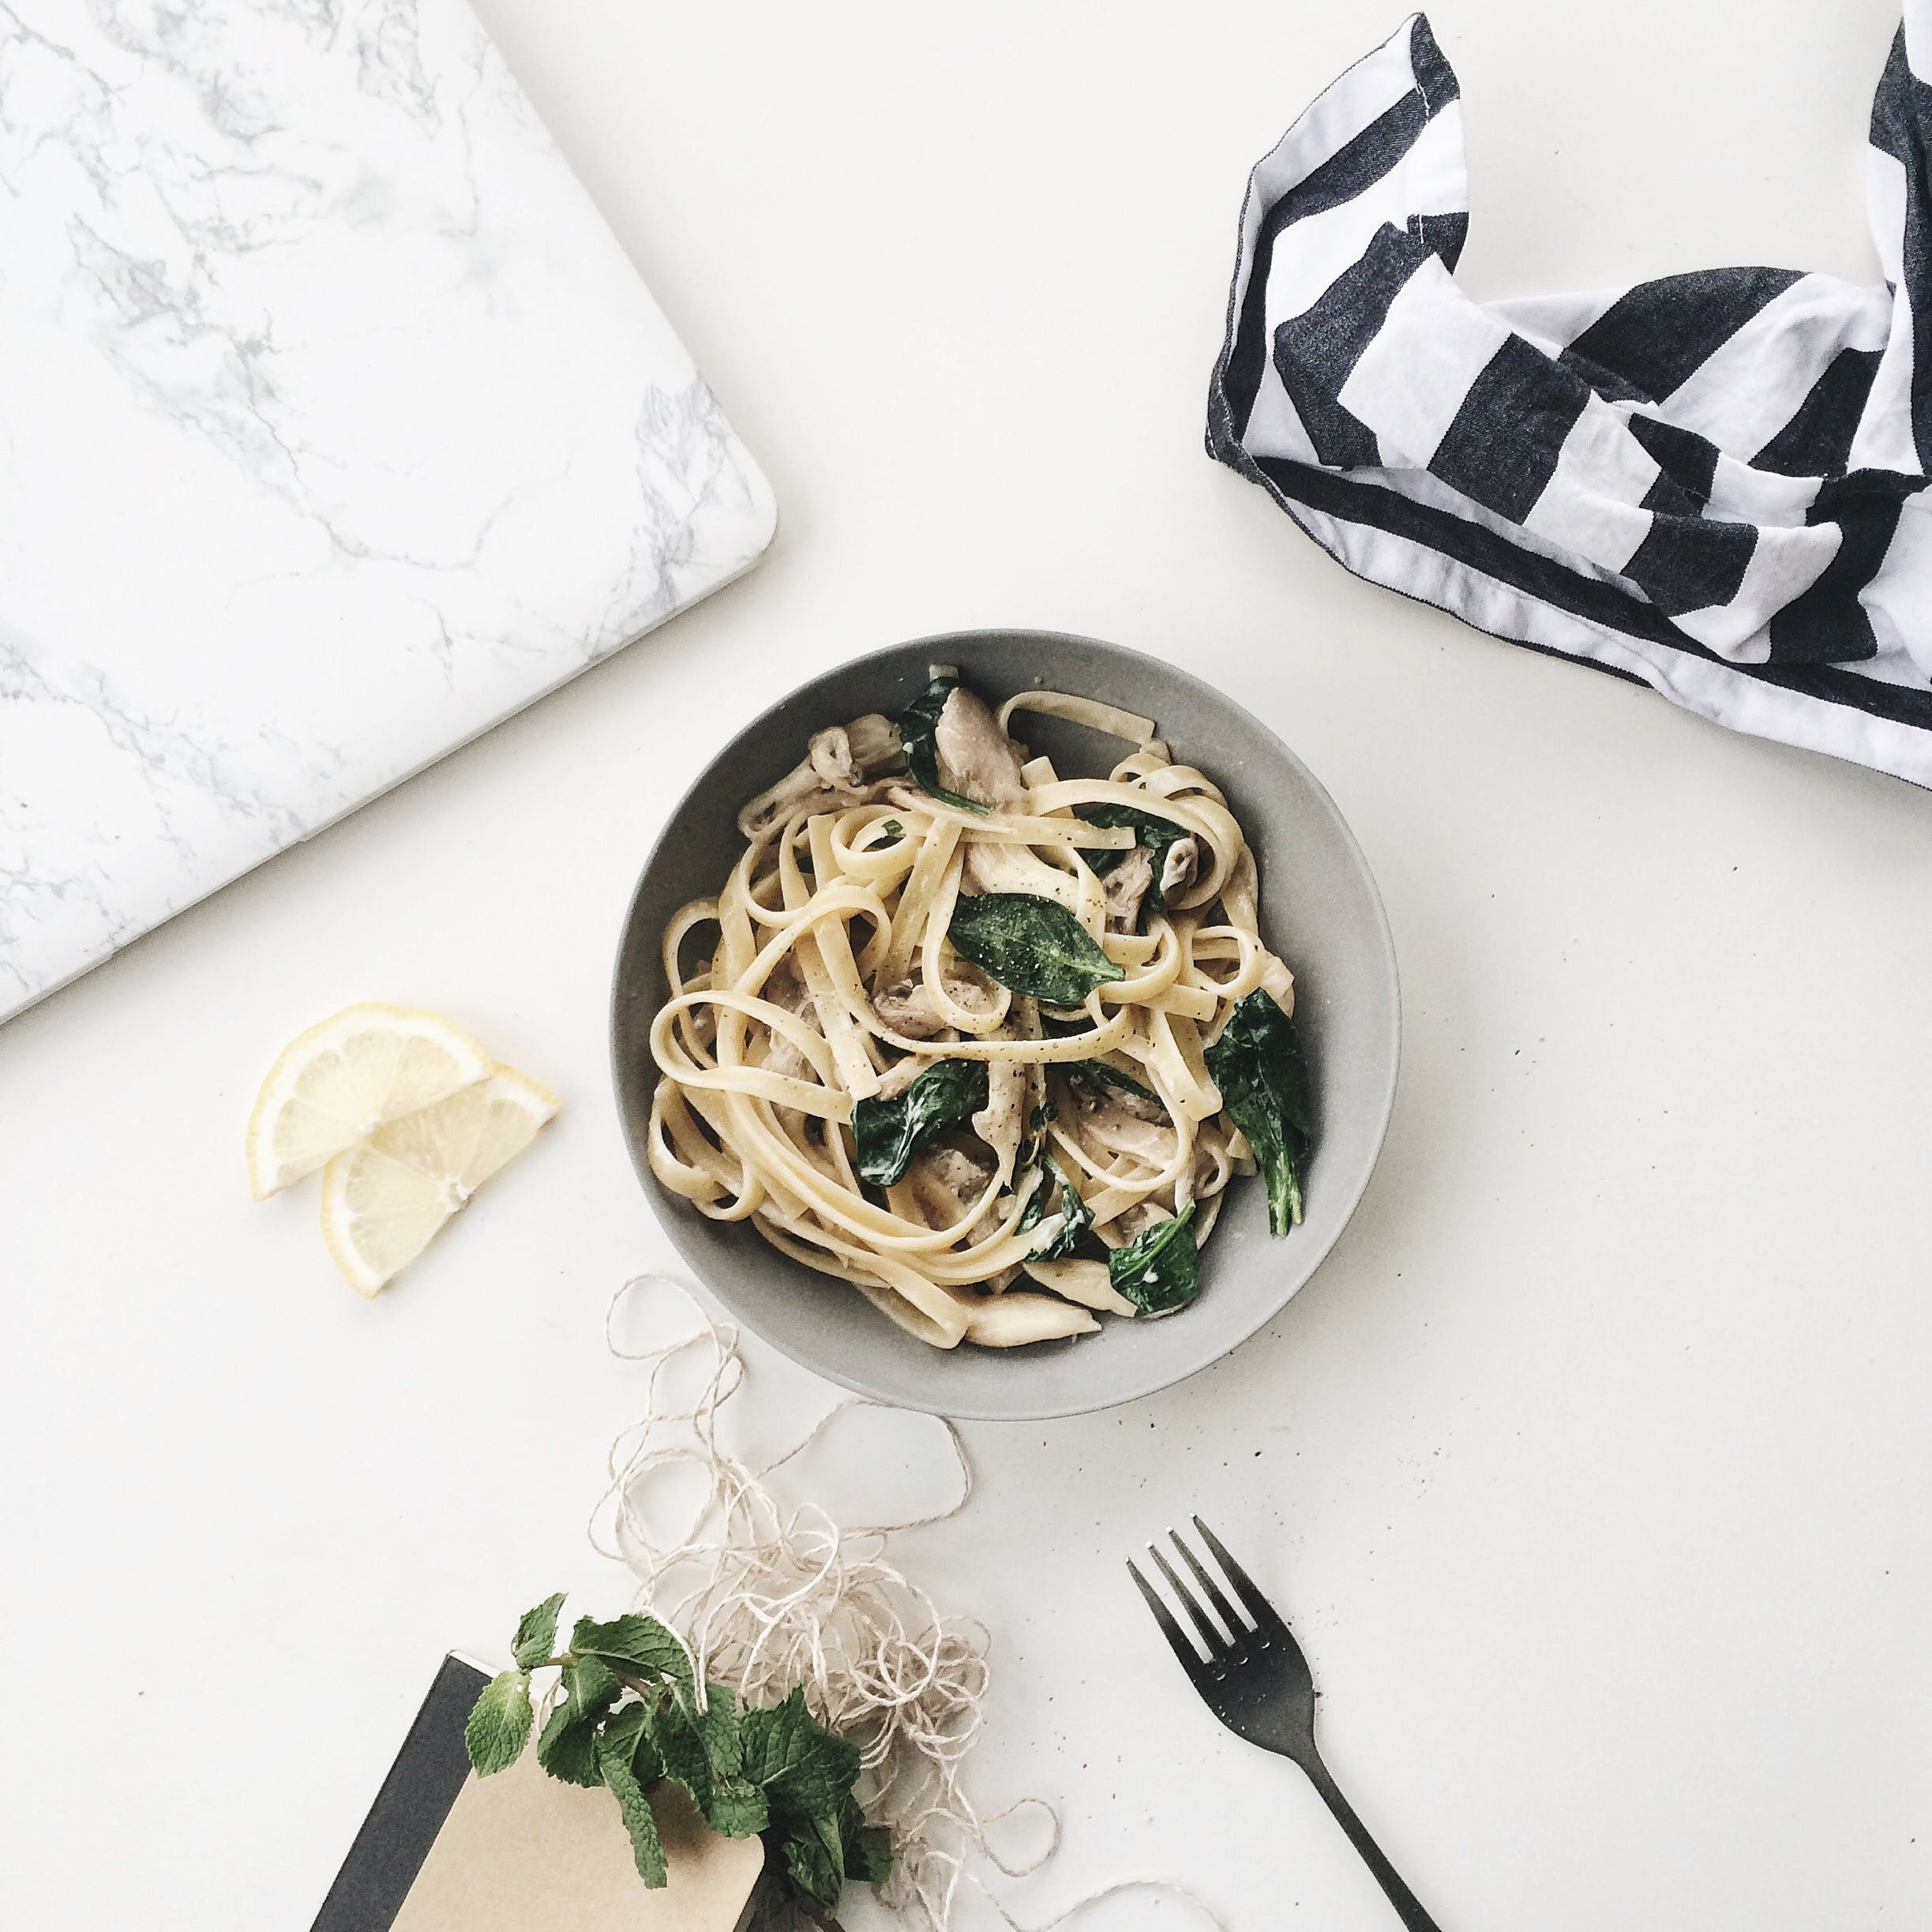 Carbonara in Gray Bowl